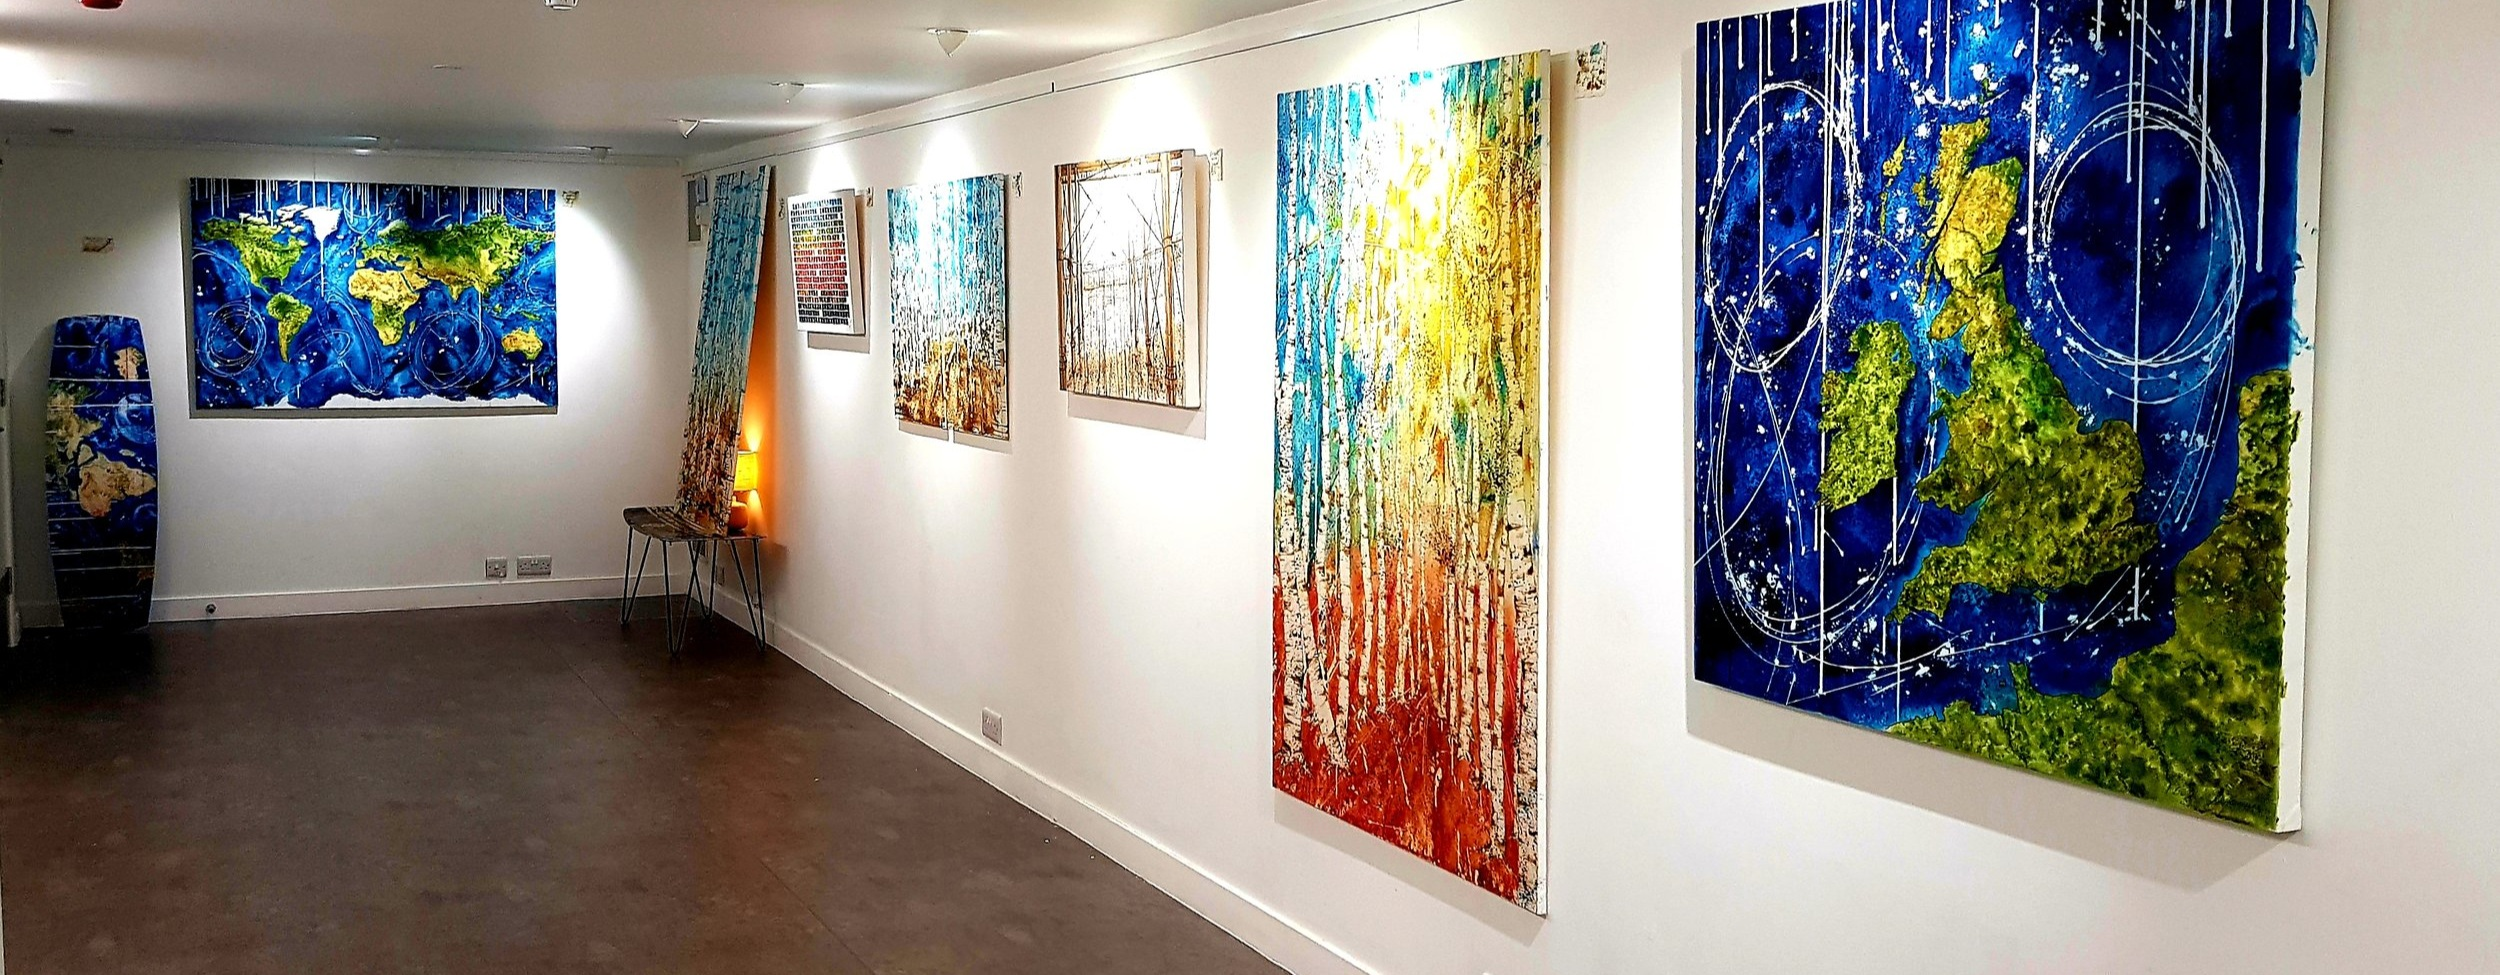 My solo show at DC1 Gallery in Seaside Road Eastbourne was on display throughout March.